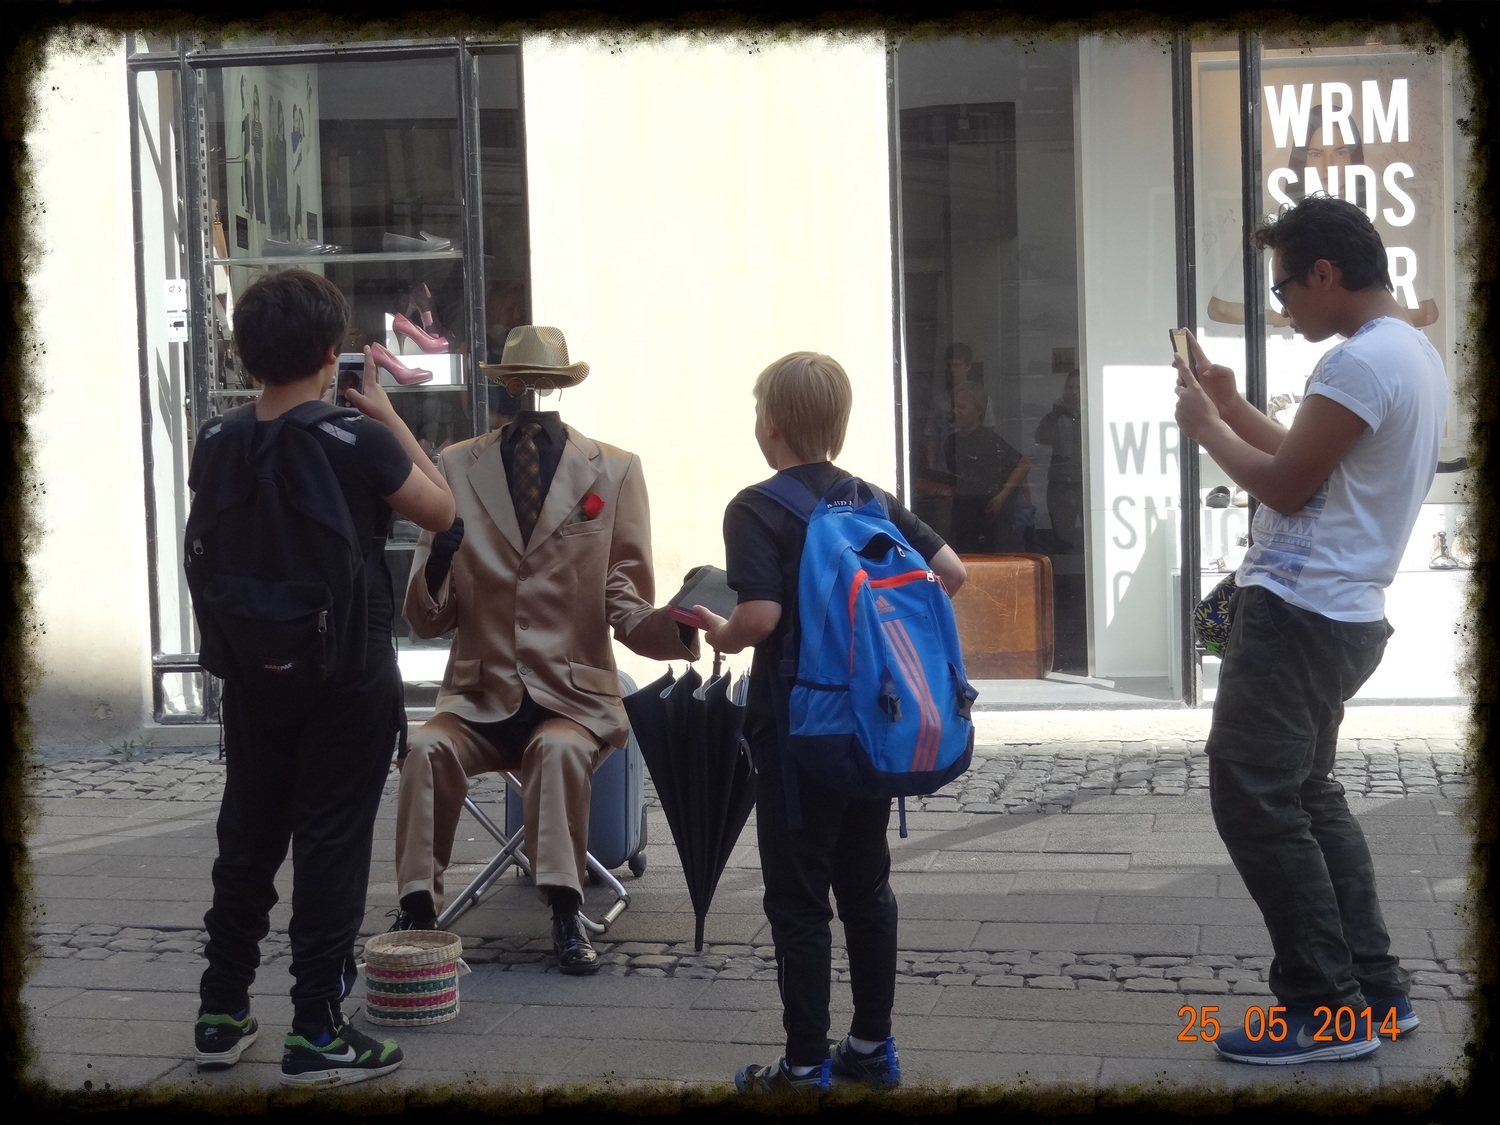 Students amused by street entertainment in Copenhagen this morning.